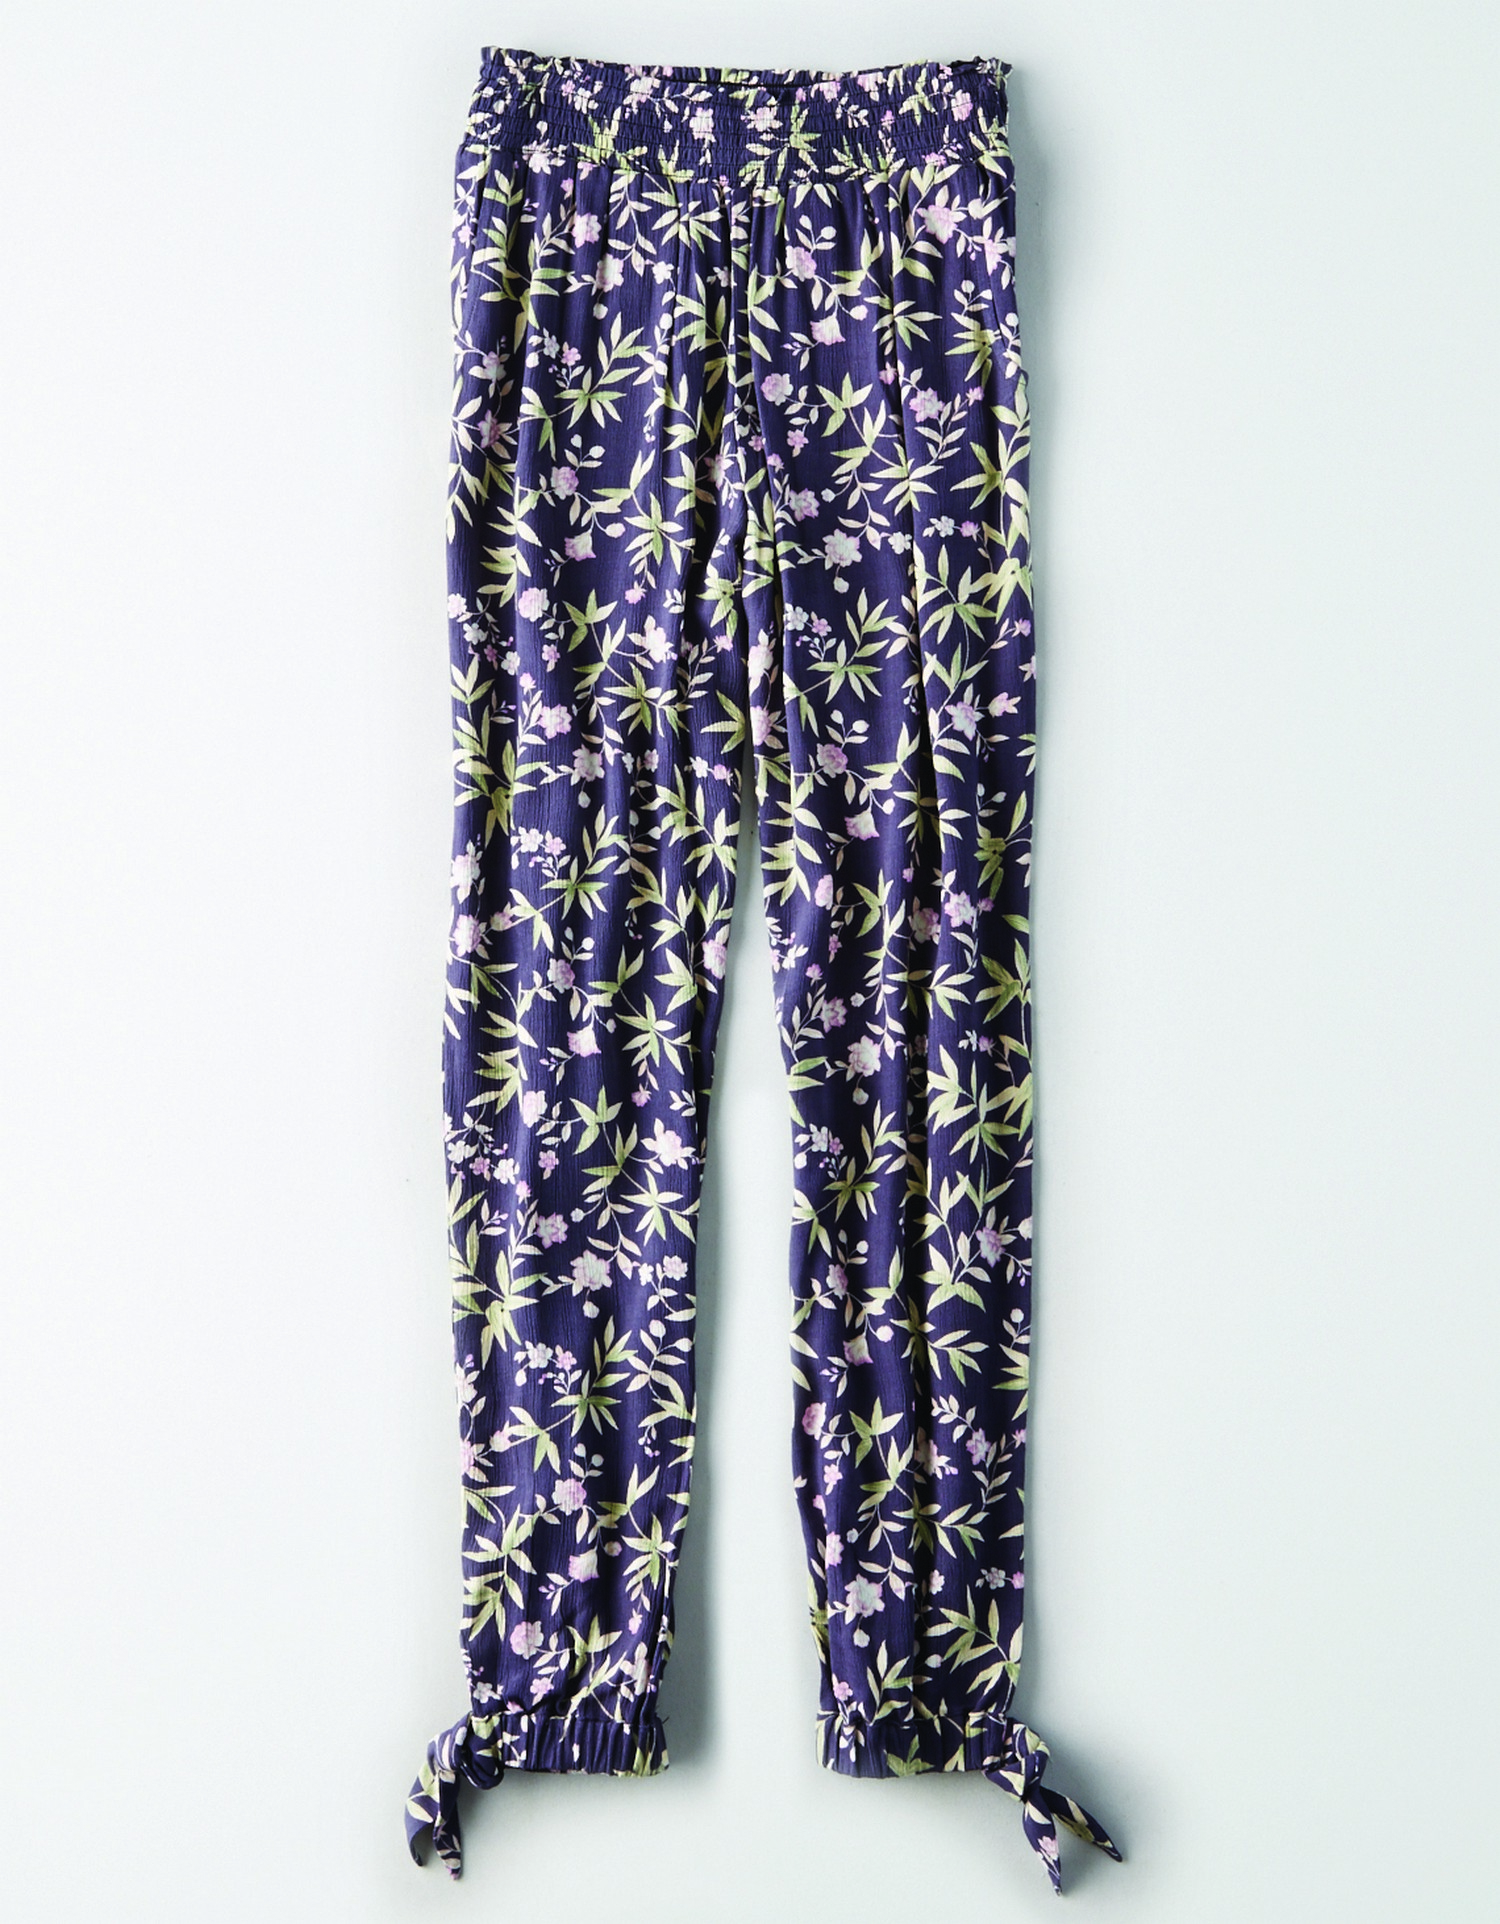 AE - INTL - Apparel - W - Jogger Pant - Dark grey w/Green and pink floral leaf print allover - ties on ankles - light flow fabric KS